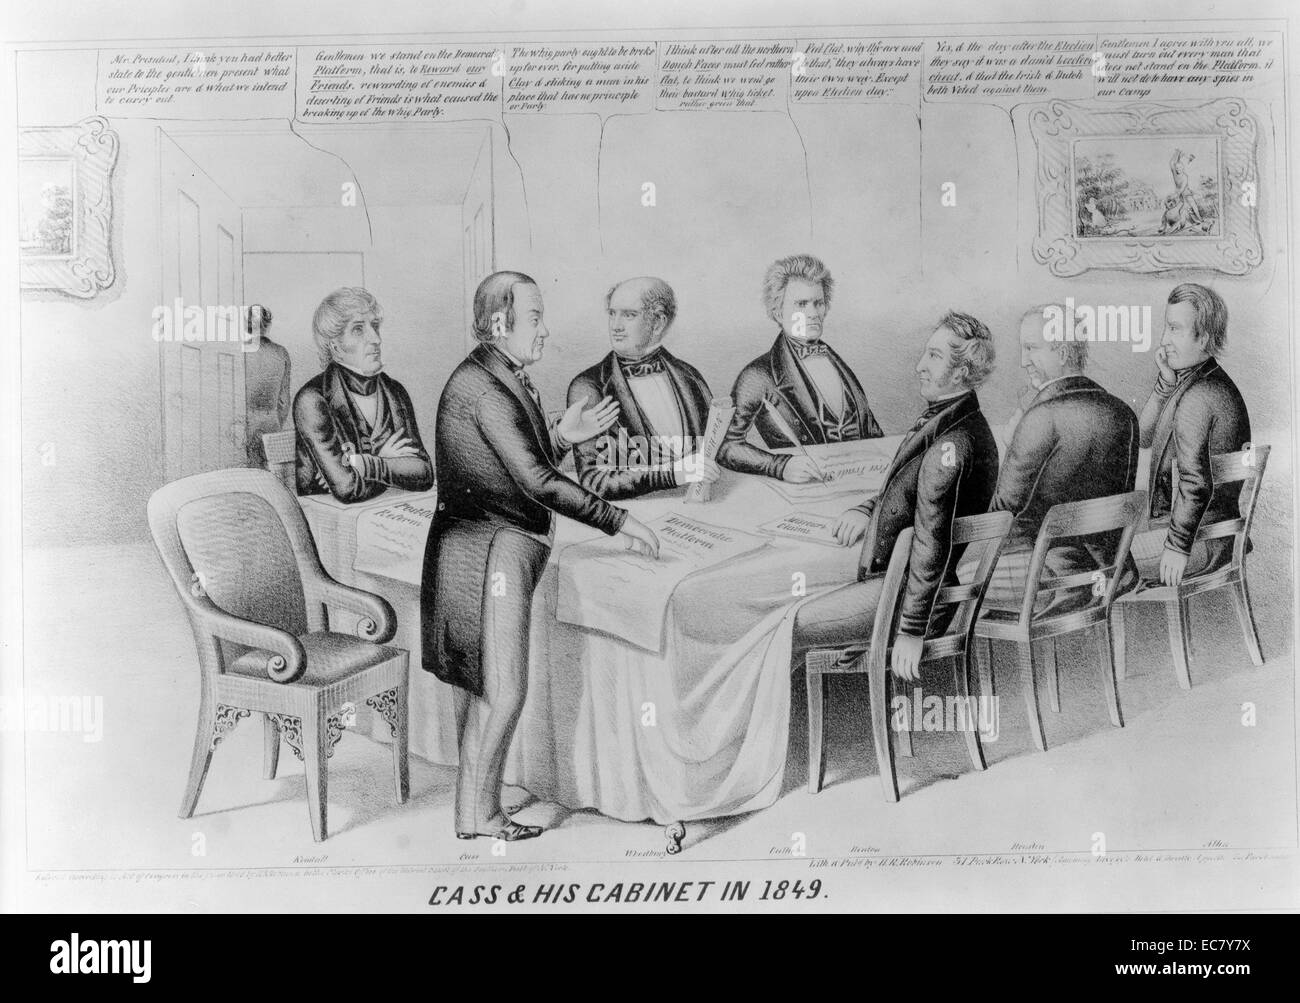 Cass & his cabinet in 1849' The satire imputes to the Democrats of 1848, led by candidate Lewis Cass, the corrupt Stock Photo